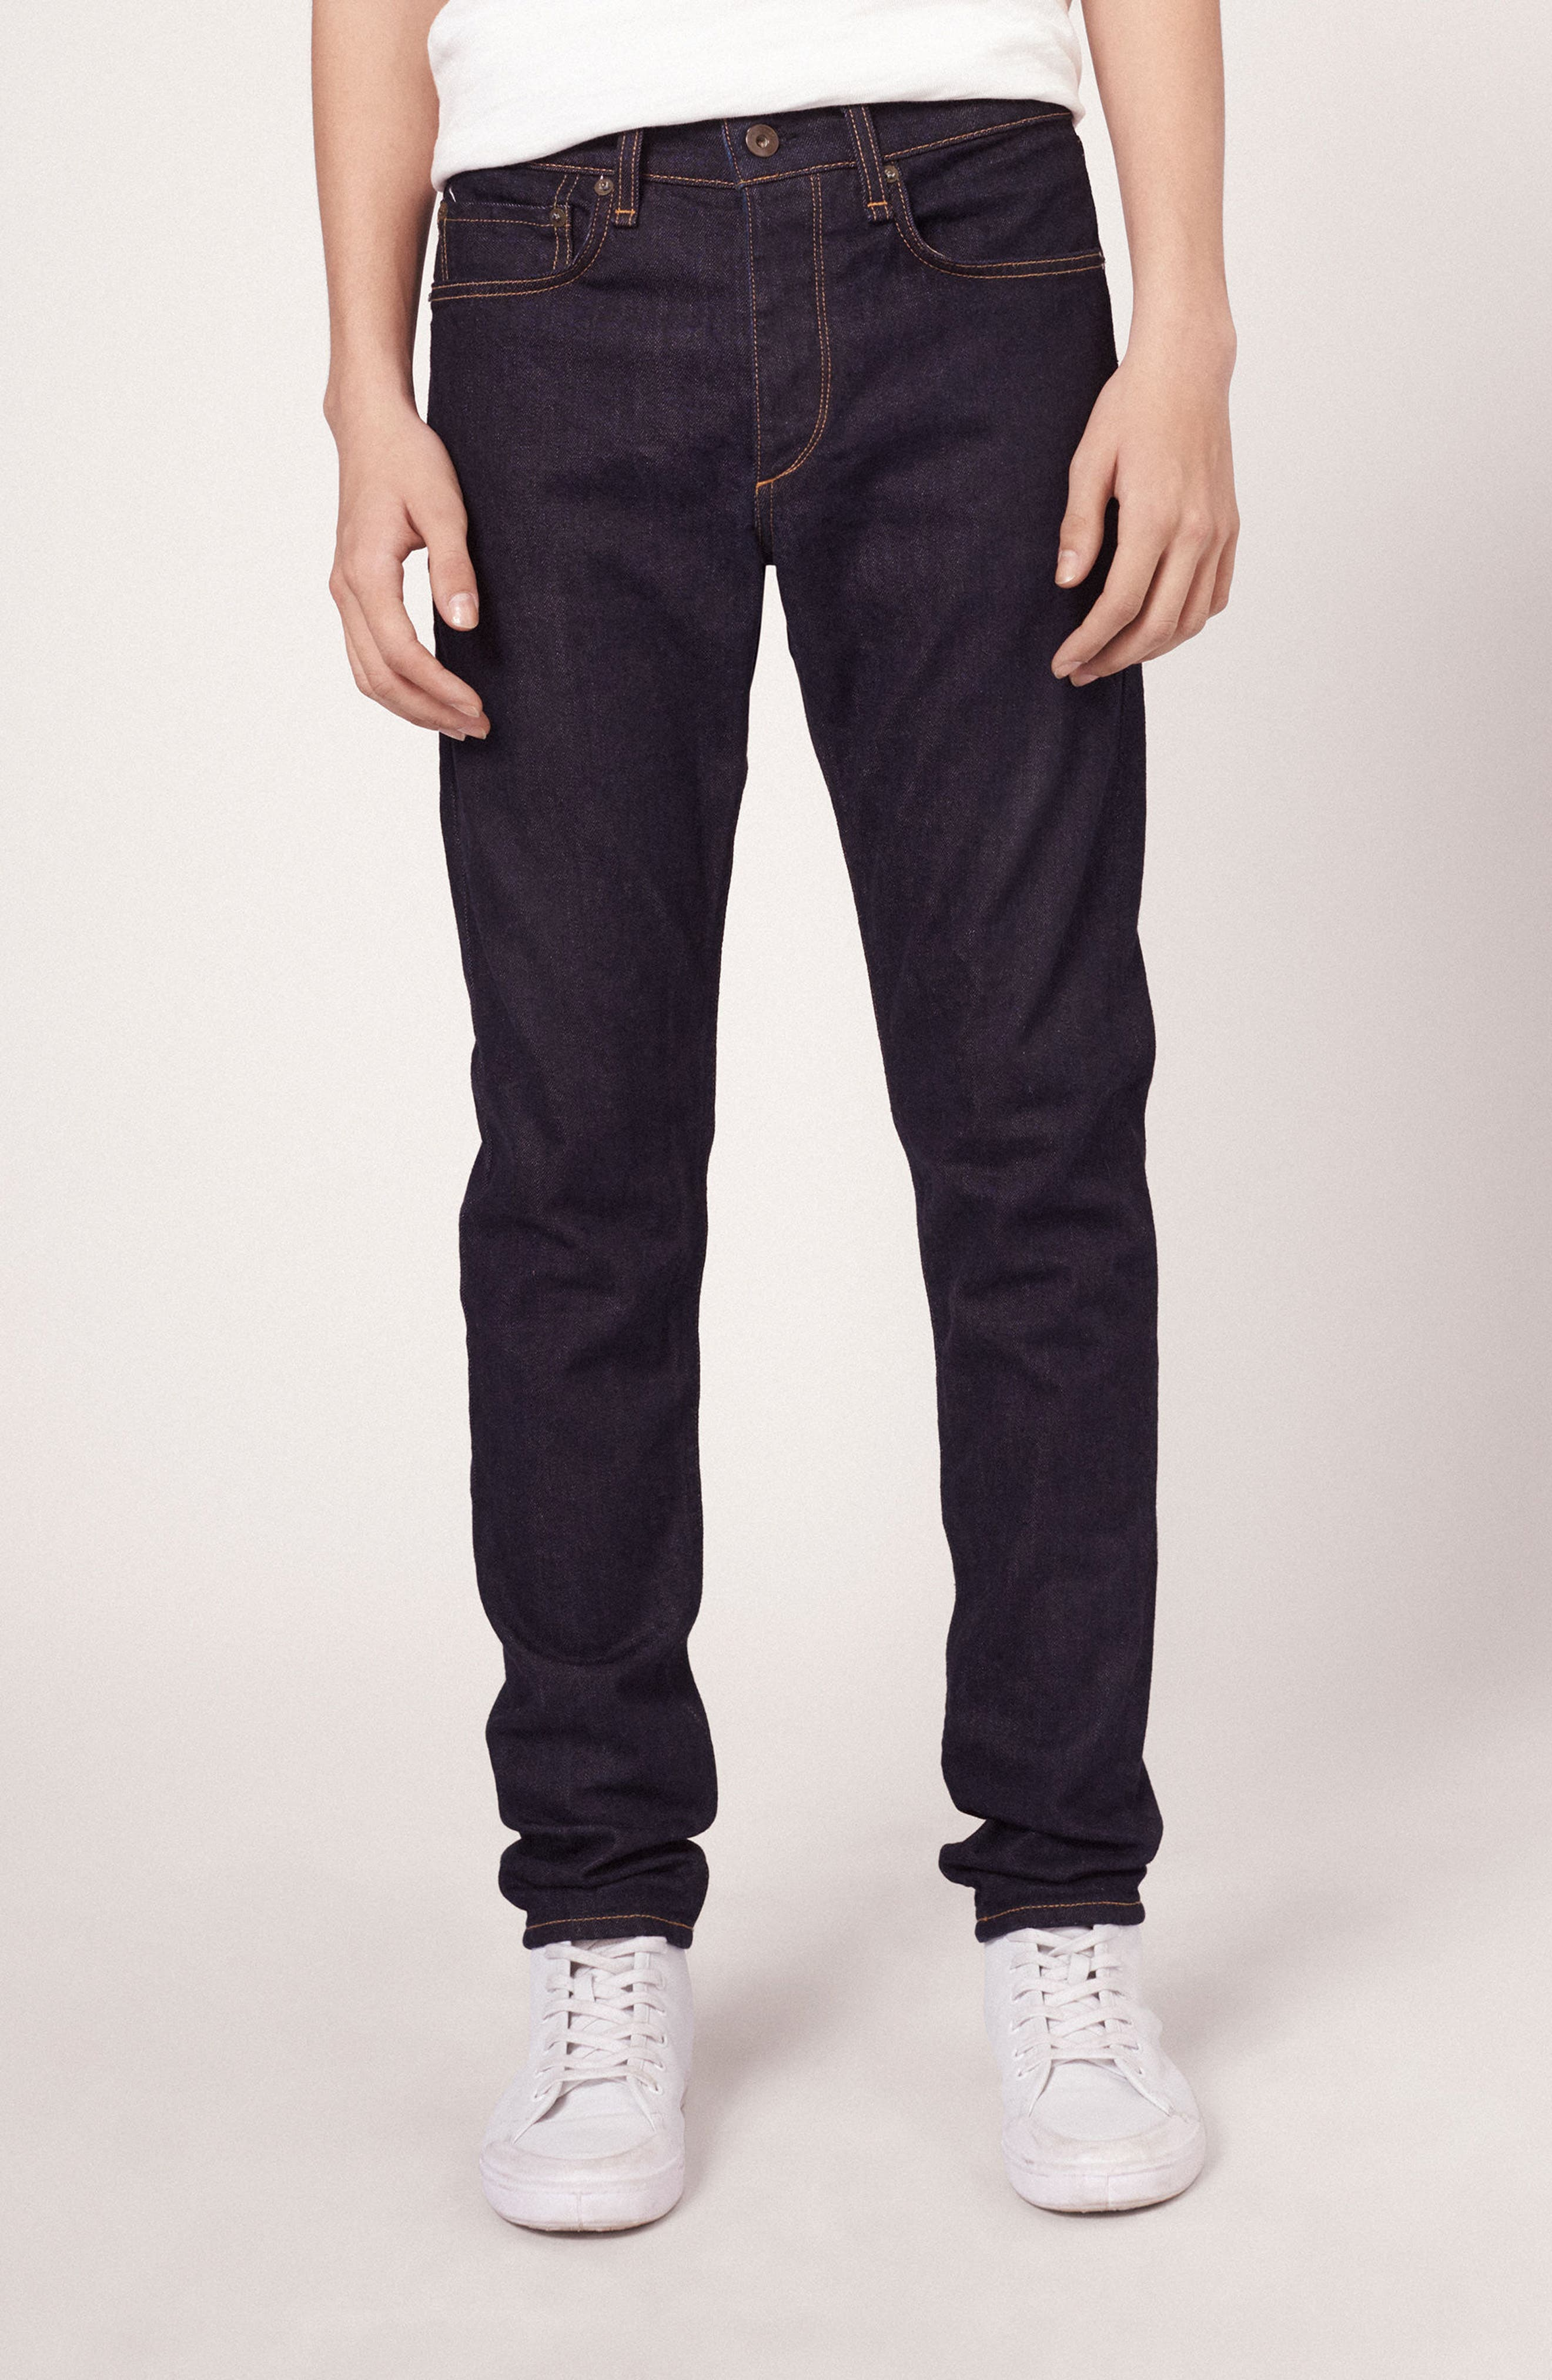 Standard Issue Fit 1 Skinny Fit Jeans,                             Alternate thumbnail 7, color,                             476